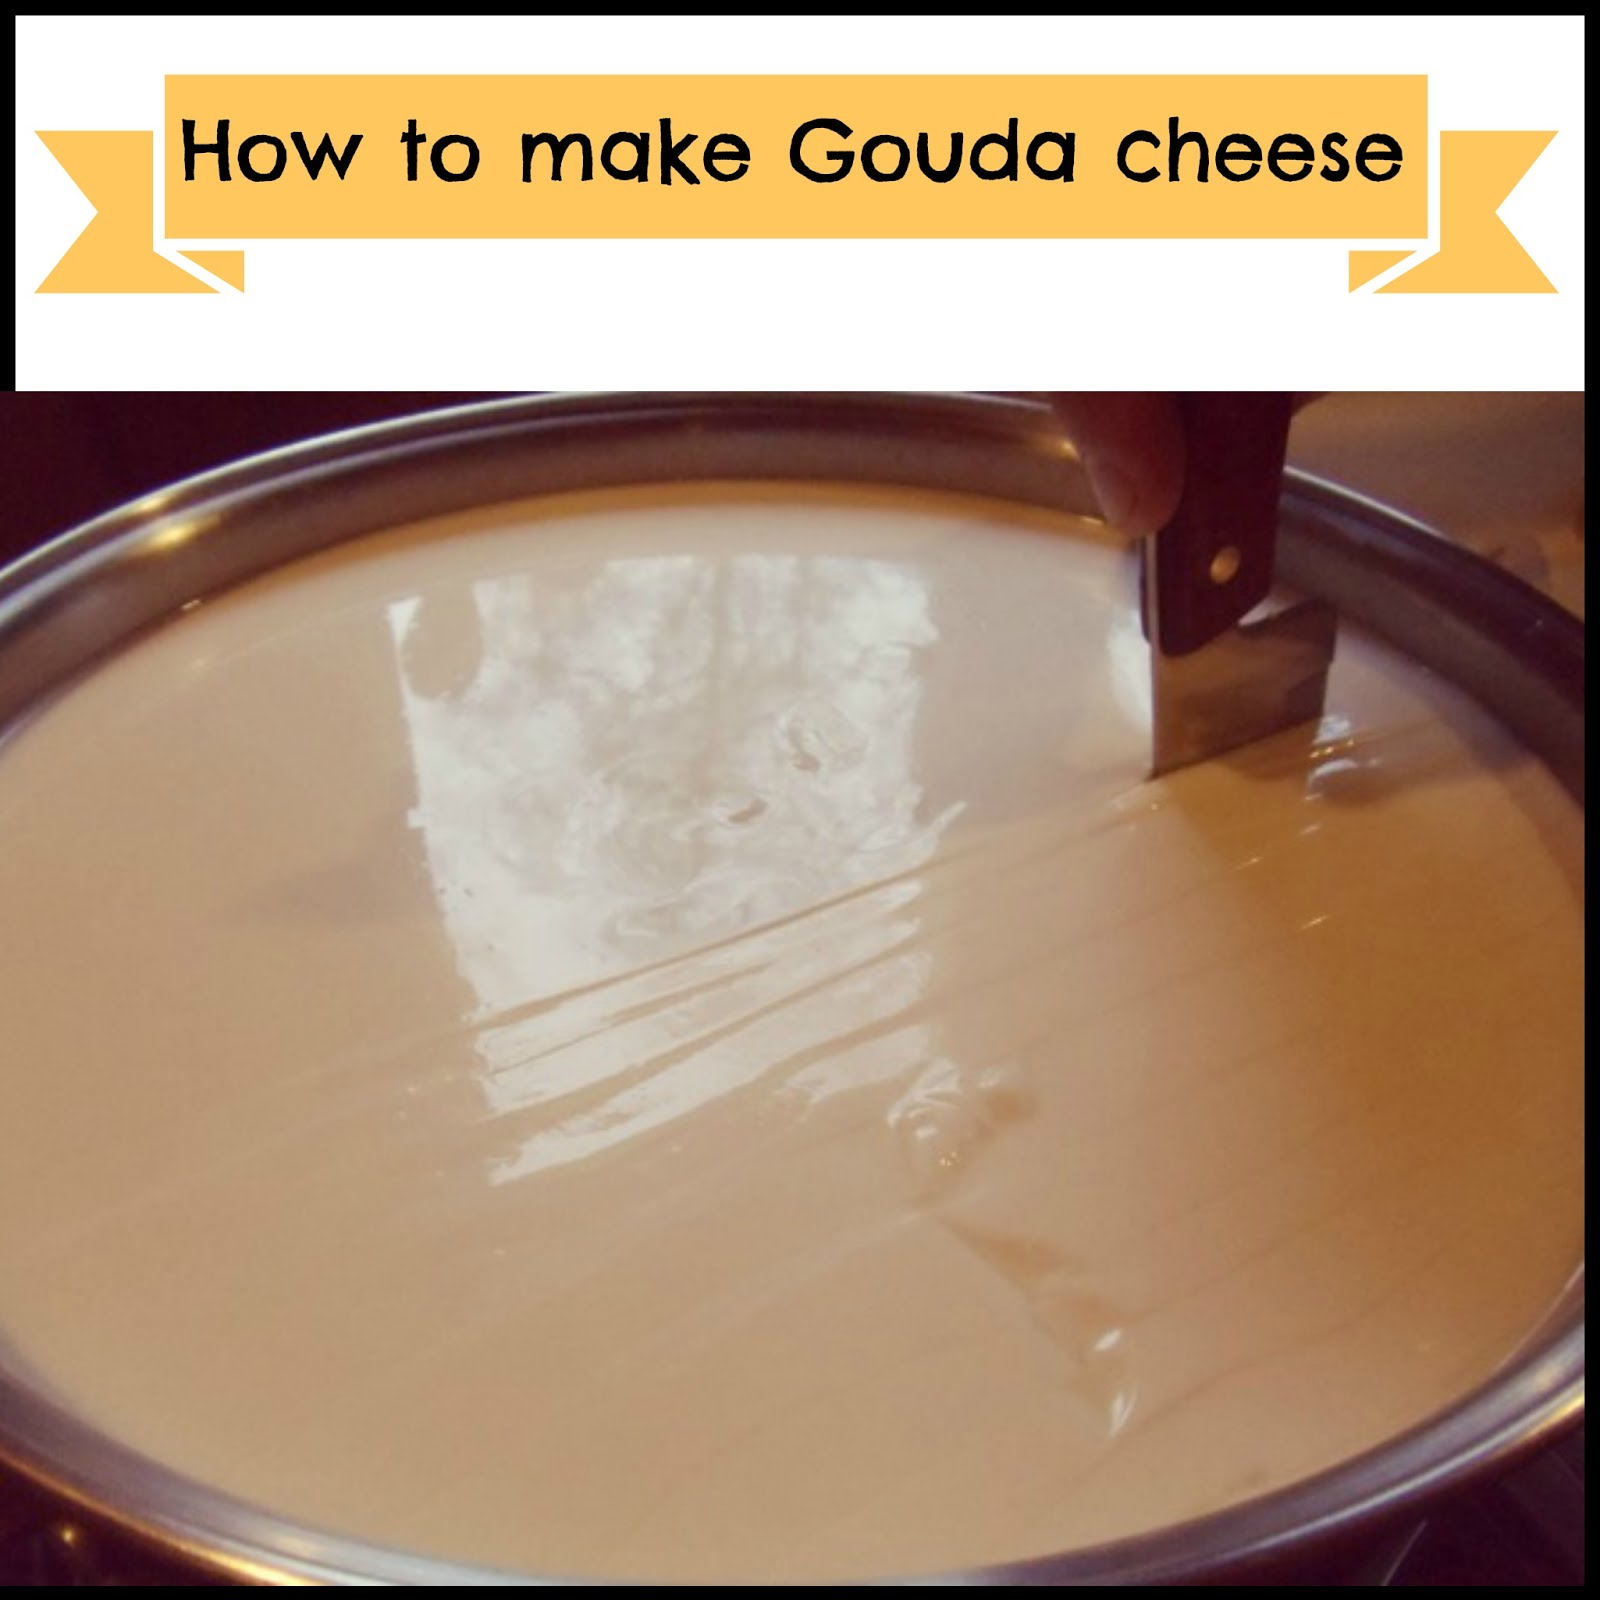 How to make Gouda cheese